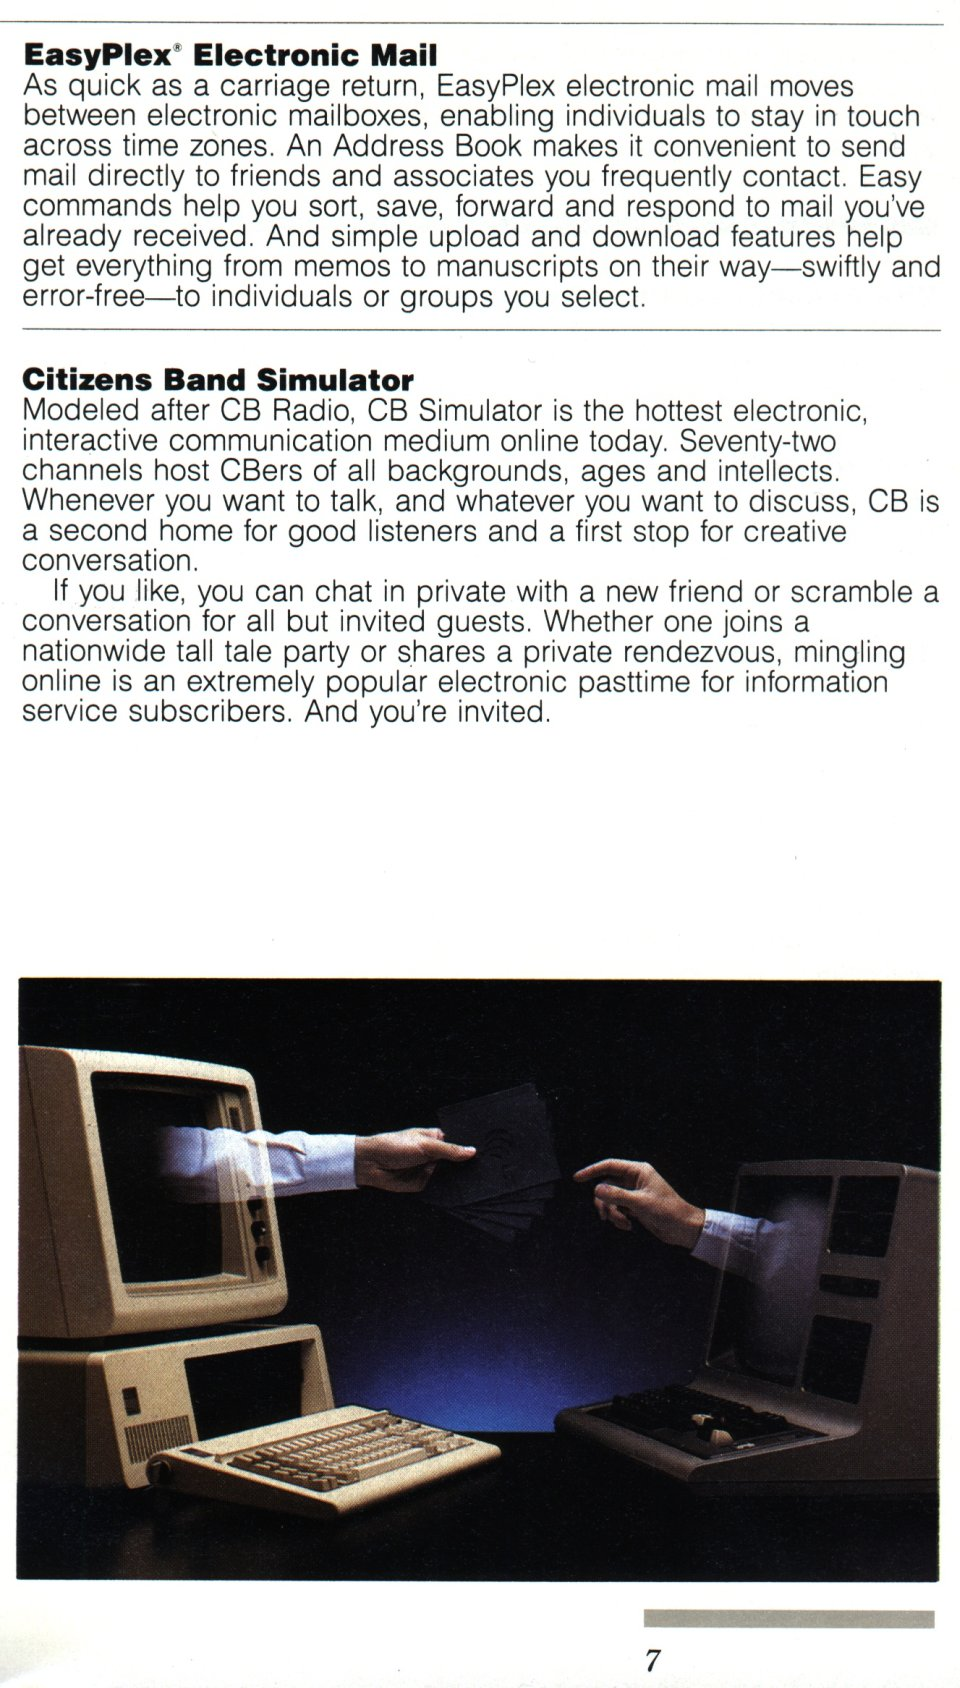 [CompuServe IntroPak page 7/44  EasyPlex Electronic Mail  Citizens Band Simulator]